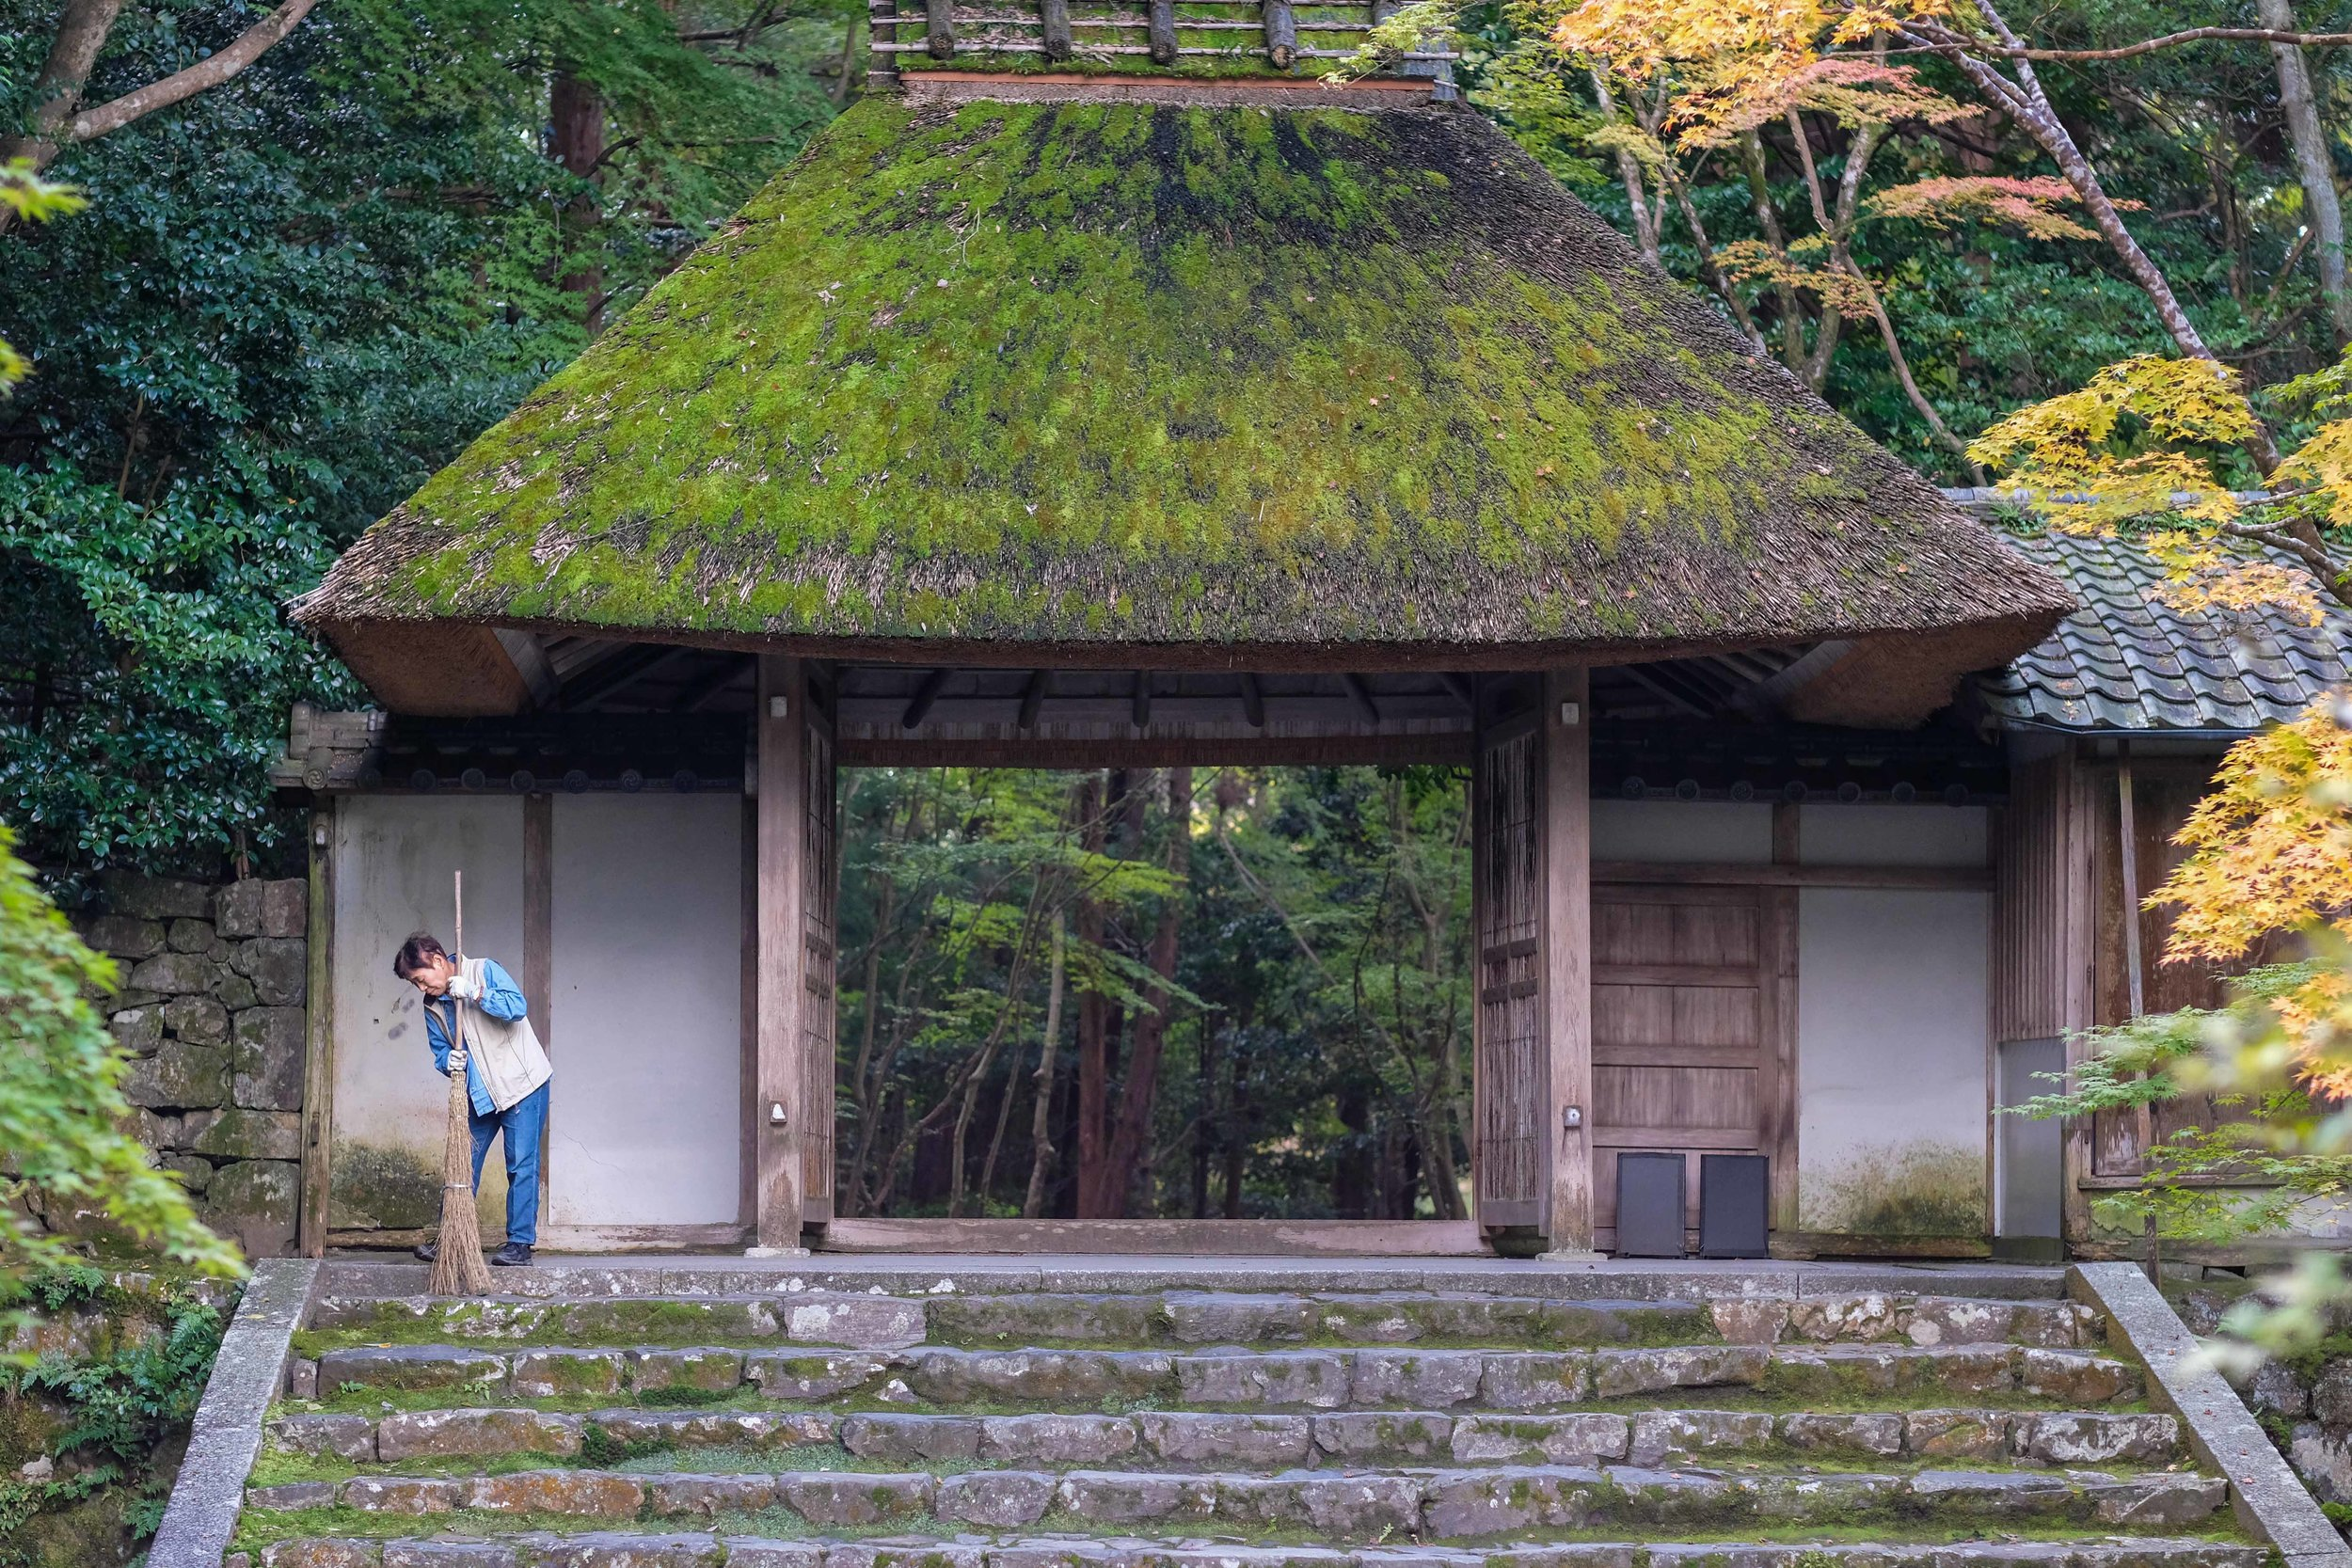 Best of off the beaten path Kyoto - December 19th, 2017